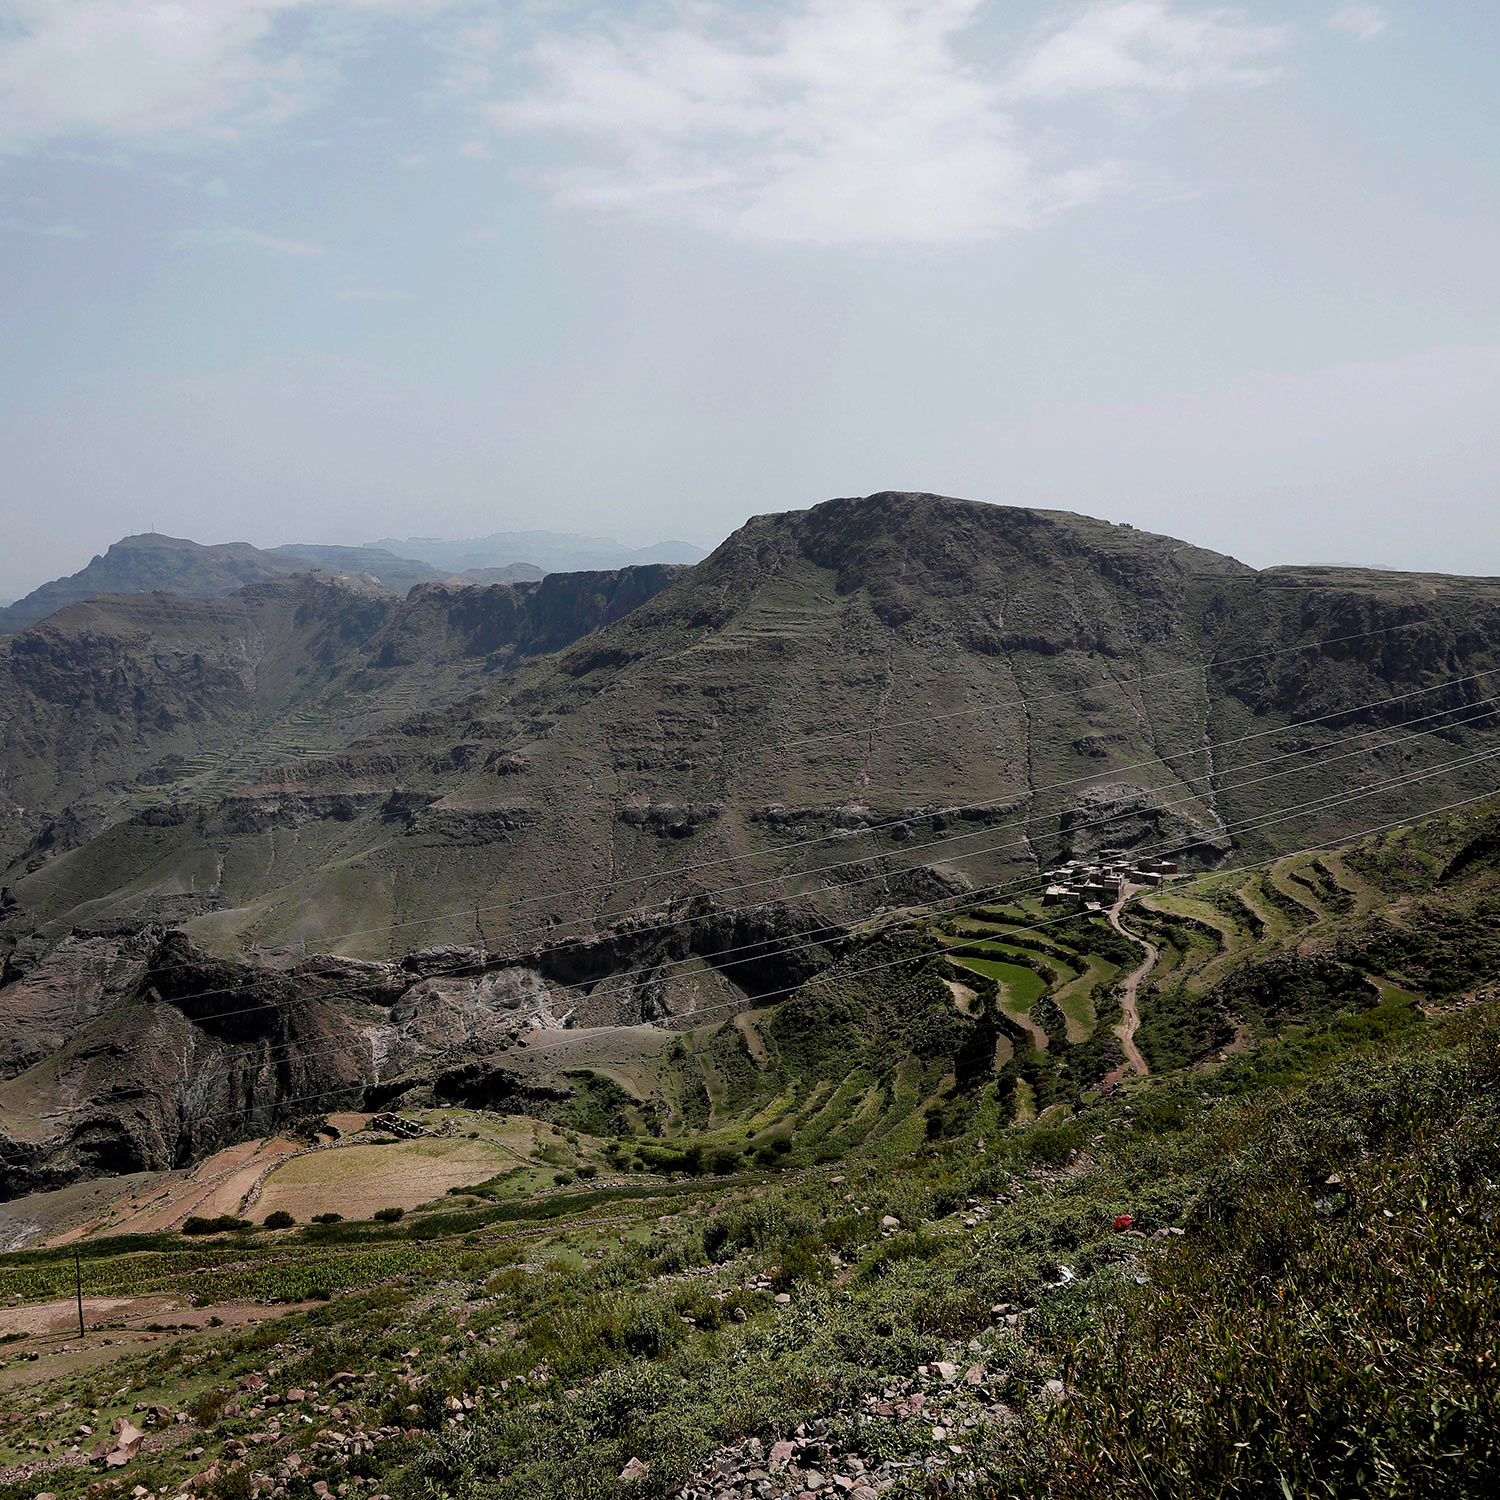 This Aug. 3, 2018 photo, shows green mountain landscape, where the terraces were planted with corn, barbary figs and qat, in Ibb, Yemen. (AP Photo/Nariman El-Mofty)